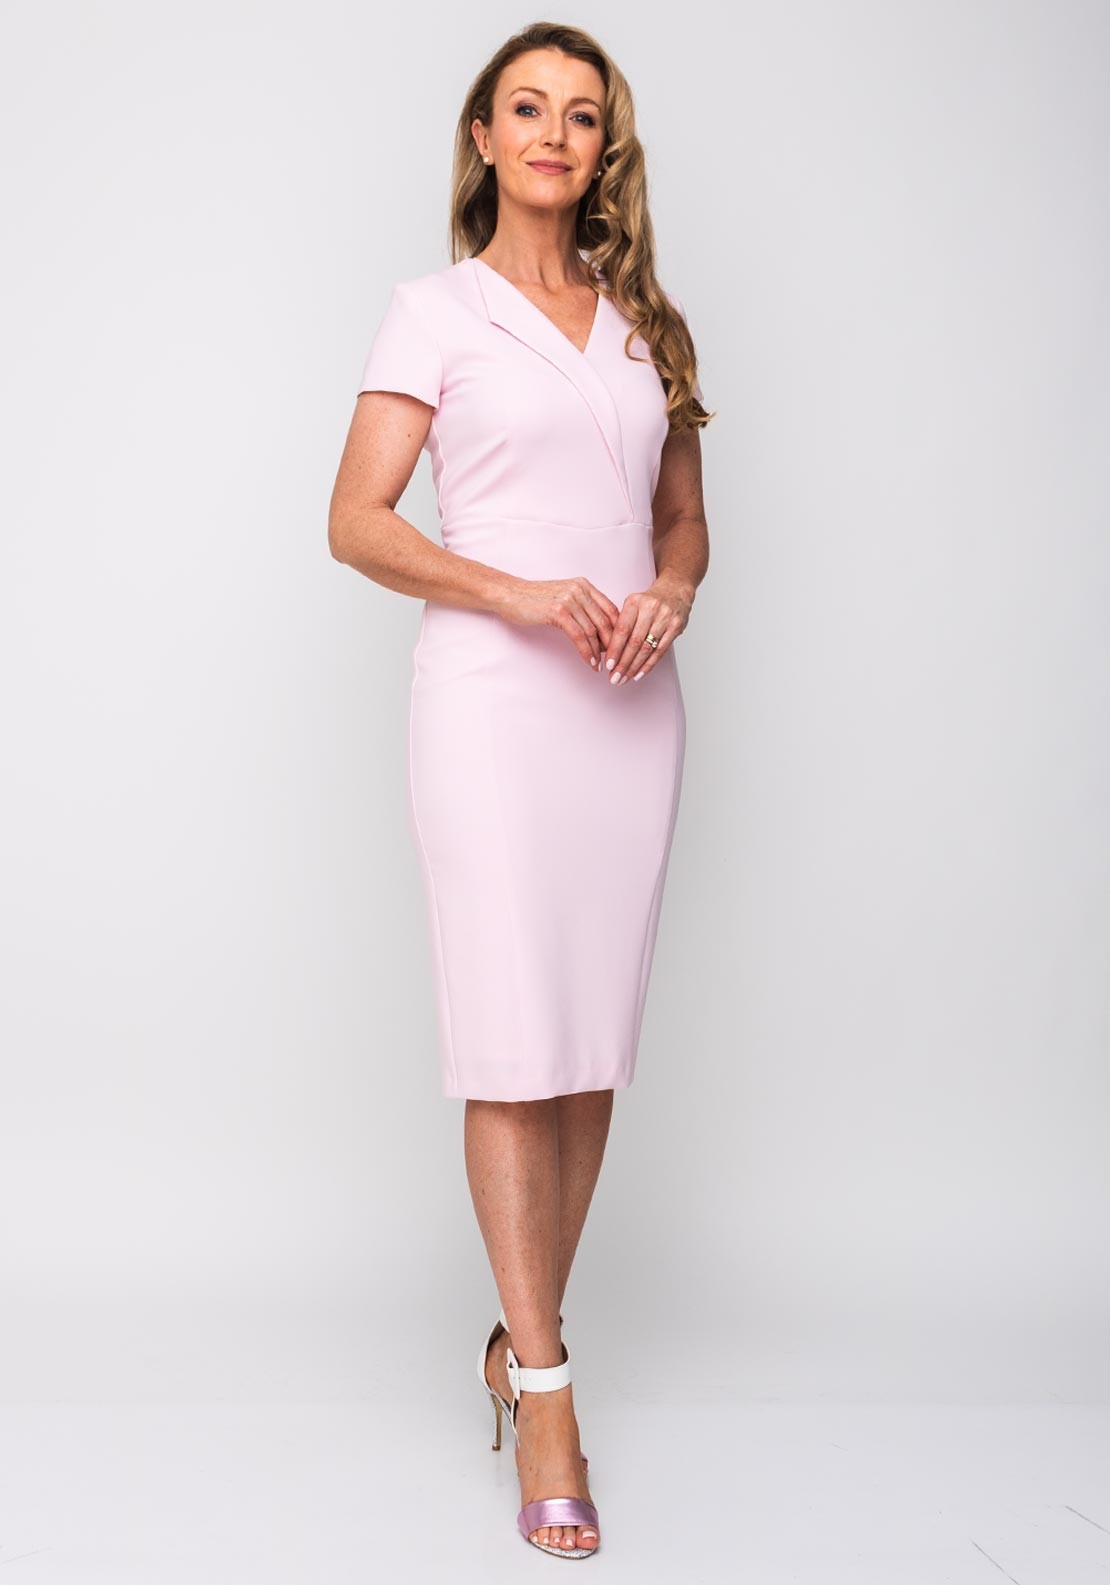 a76544a6cab8e Kate Cooper V-Neck Pencil Dress, Powder Pink. Be the first to review this  product. Kate Cooper V-Neck Pencil Dress, Powder Pink